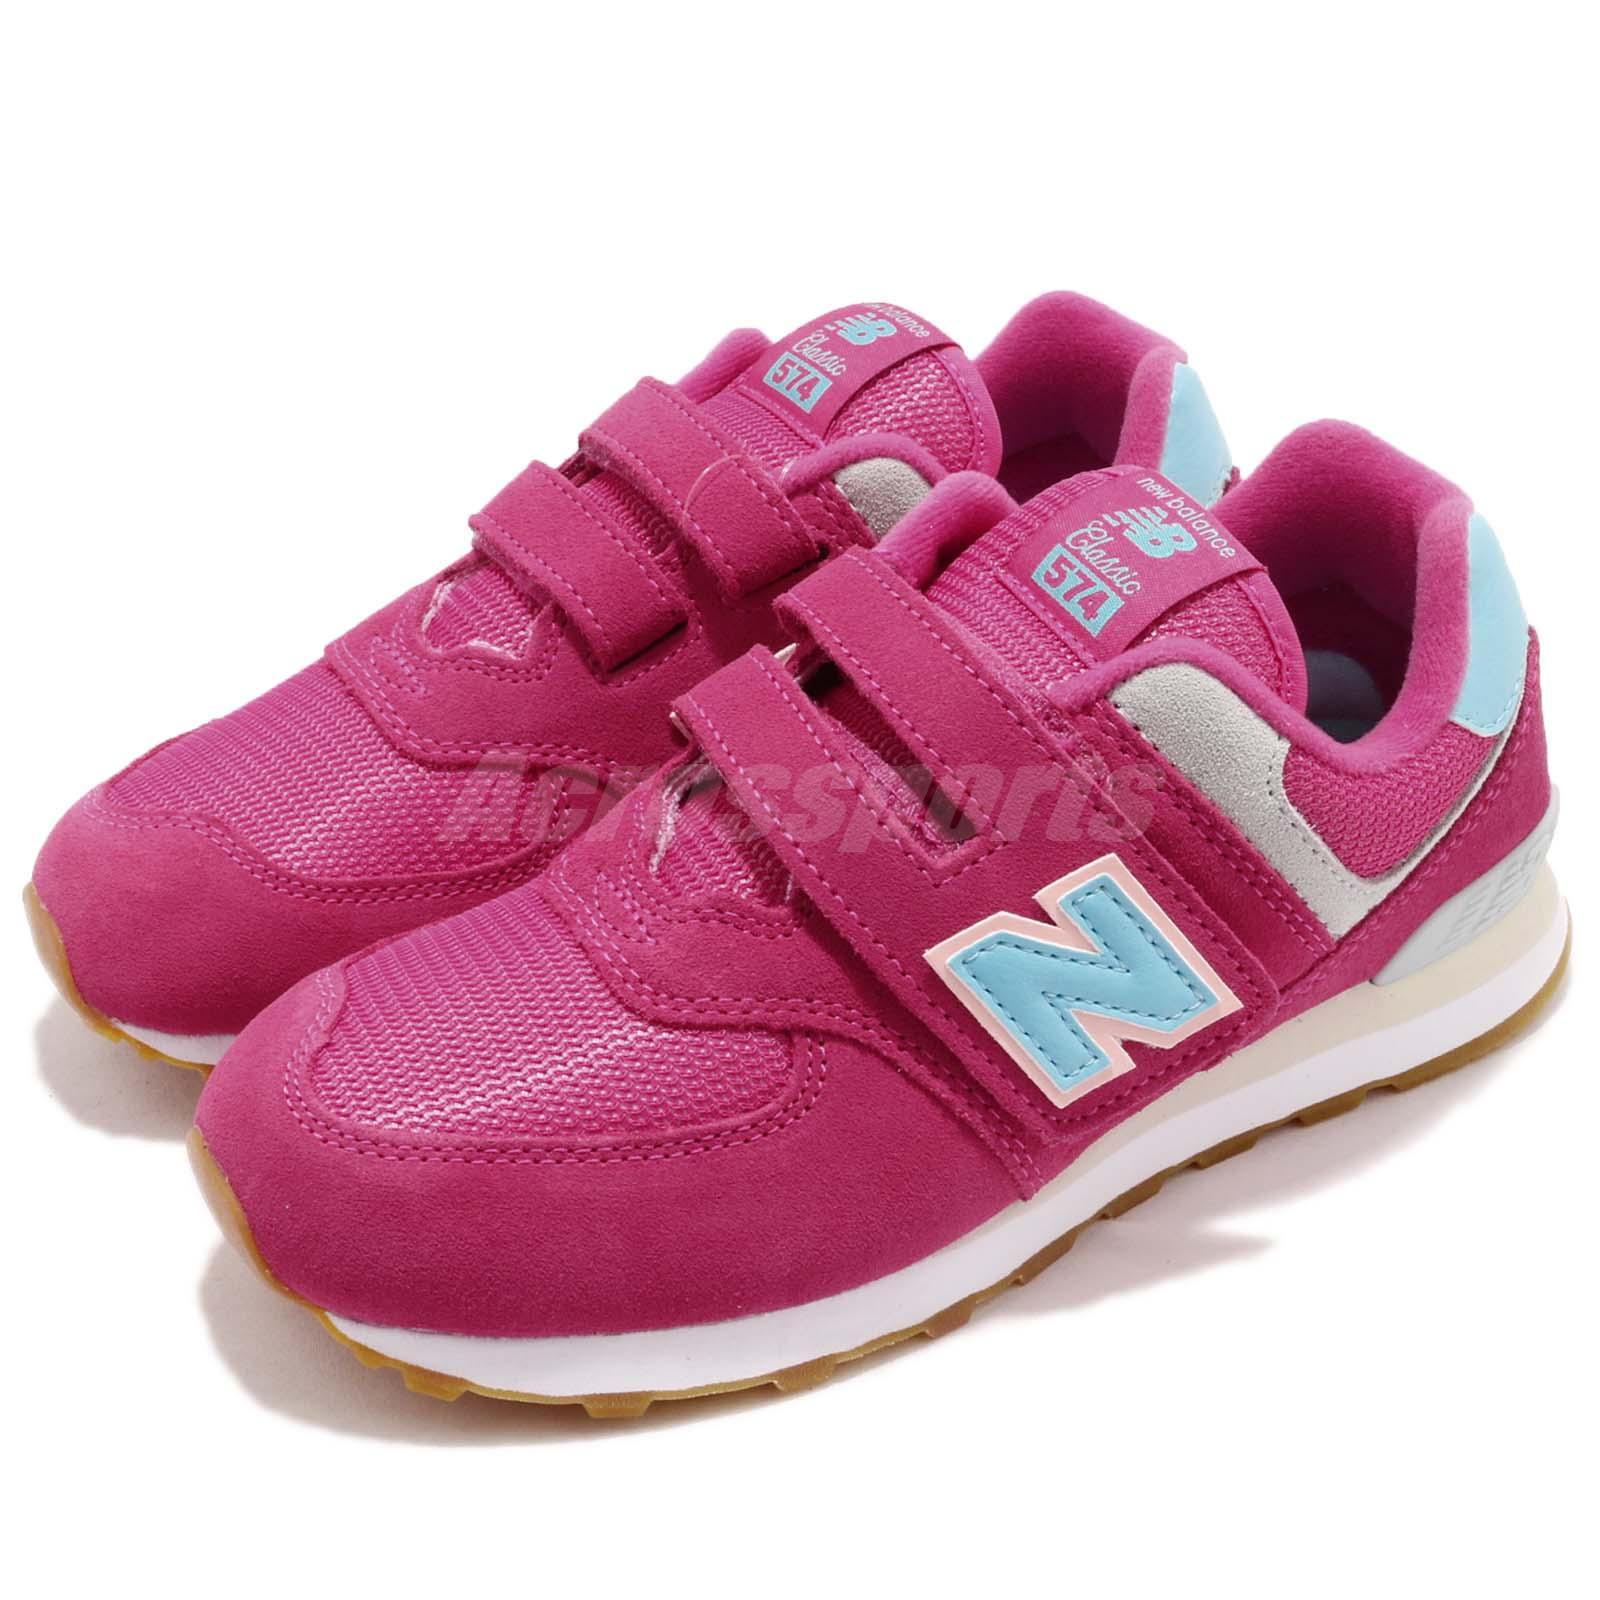 size 40 027fc c6ceb Details about New Balance 574 Wide Fuchsia Pink Blue Kids Girls Running  Shoes YV574 SCW